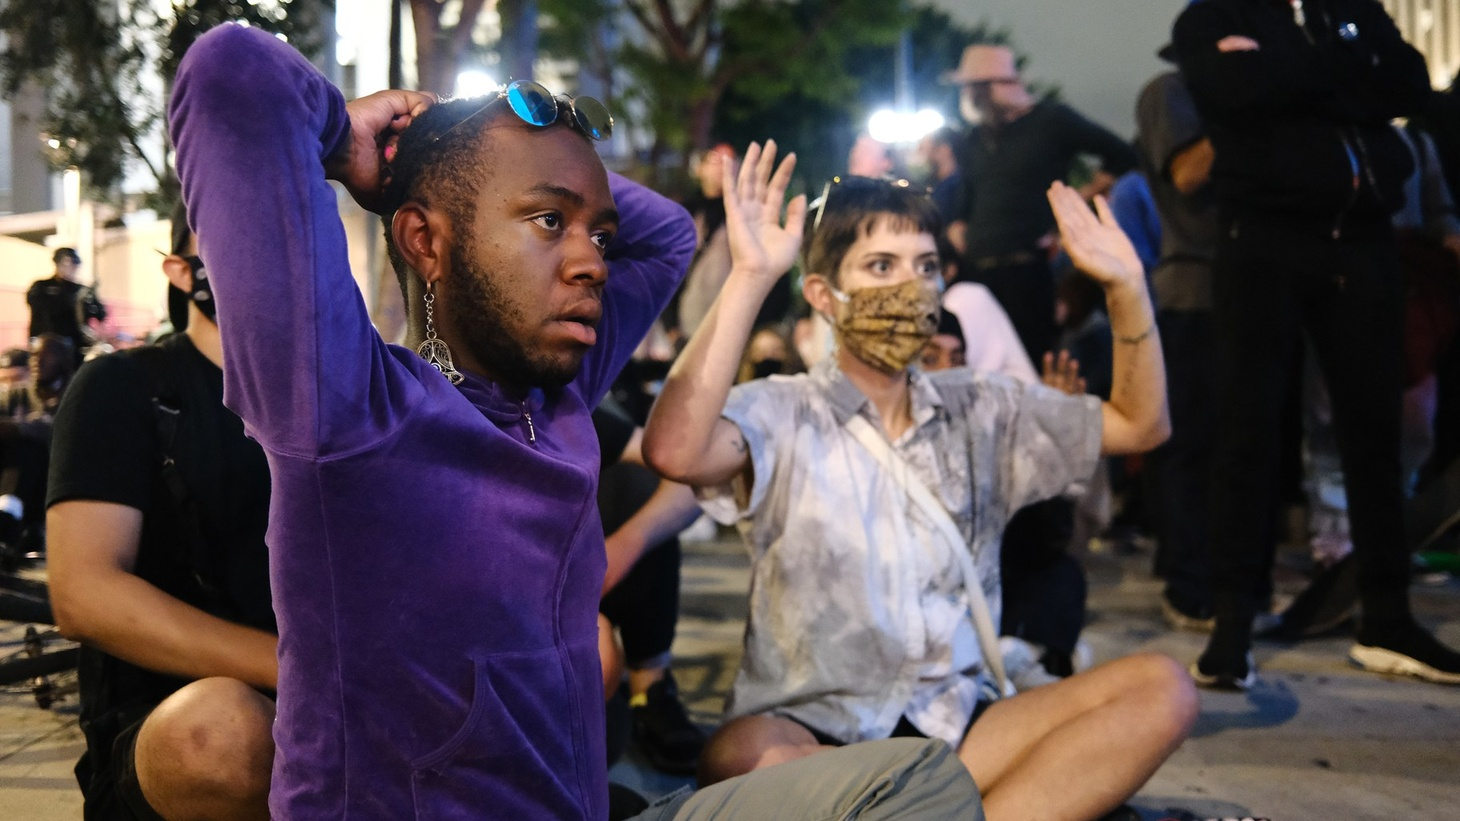 Demonstrators protest the death of George Floyd in downtown Los Angeles.